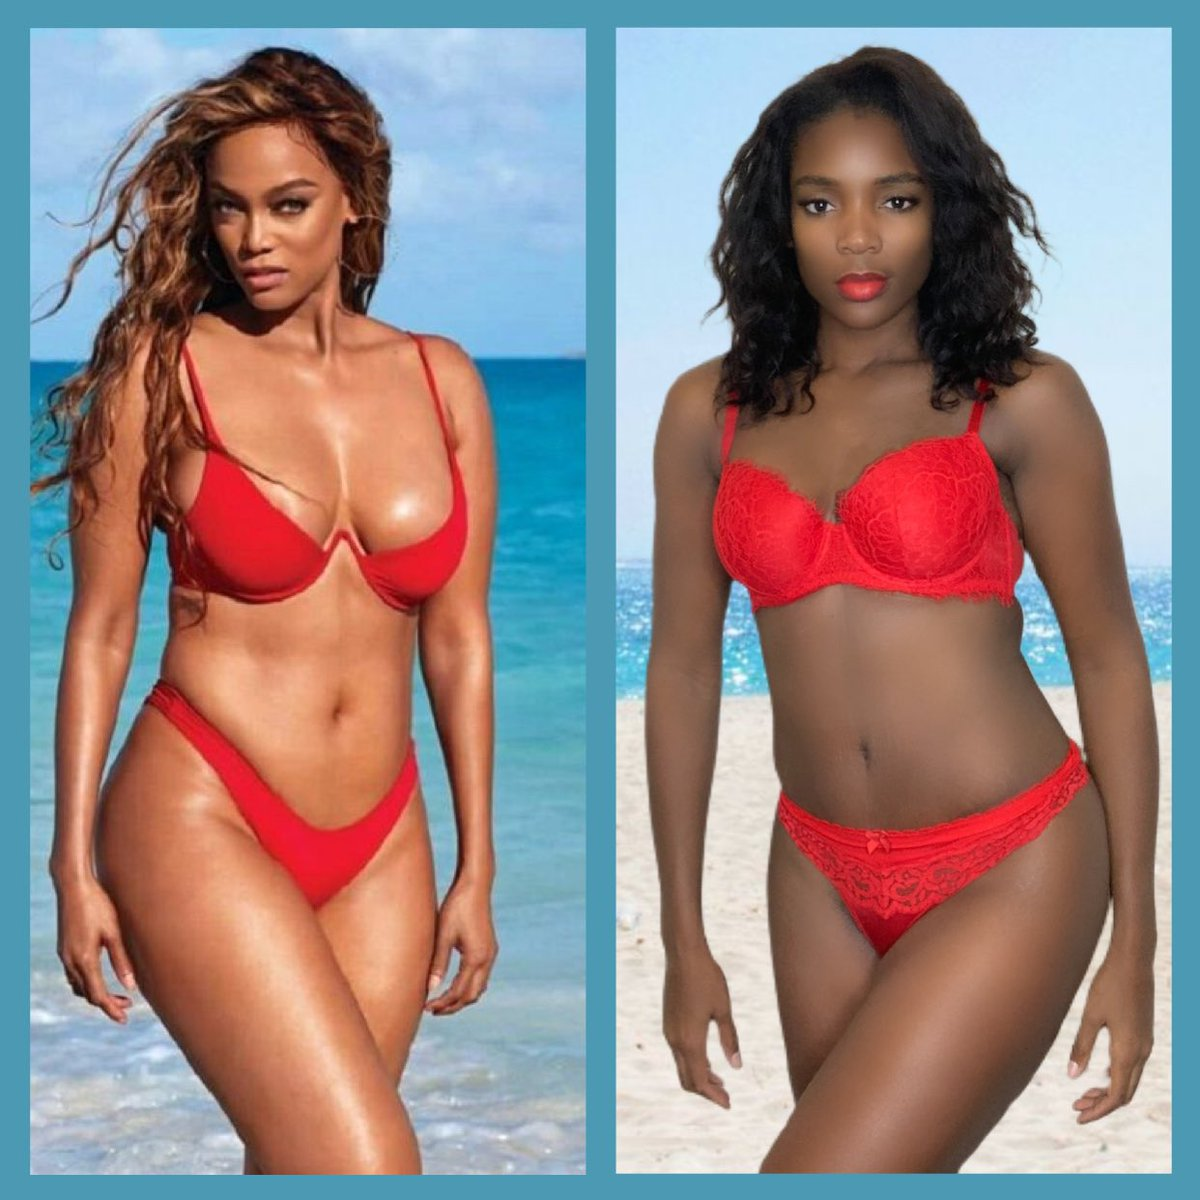 I saw there was #swimsuiticonchallenge and I had to get in on it. No one does swimsuit better than. @tyrabanks @SI_Swimsuit . Tyra I chose you beautiful. How did I do?  #fewshadesofmelanin #models @VictoriasSecret